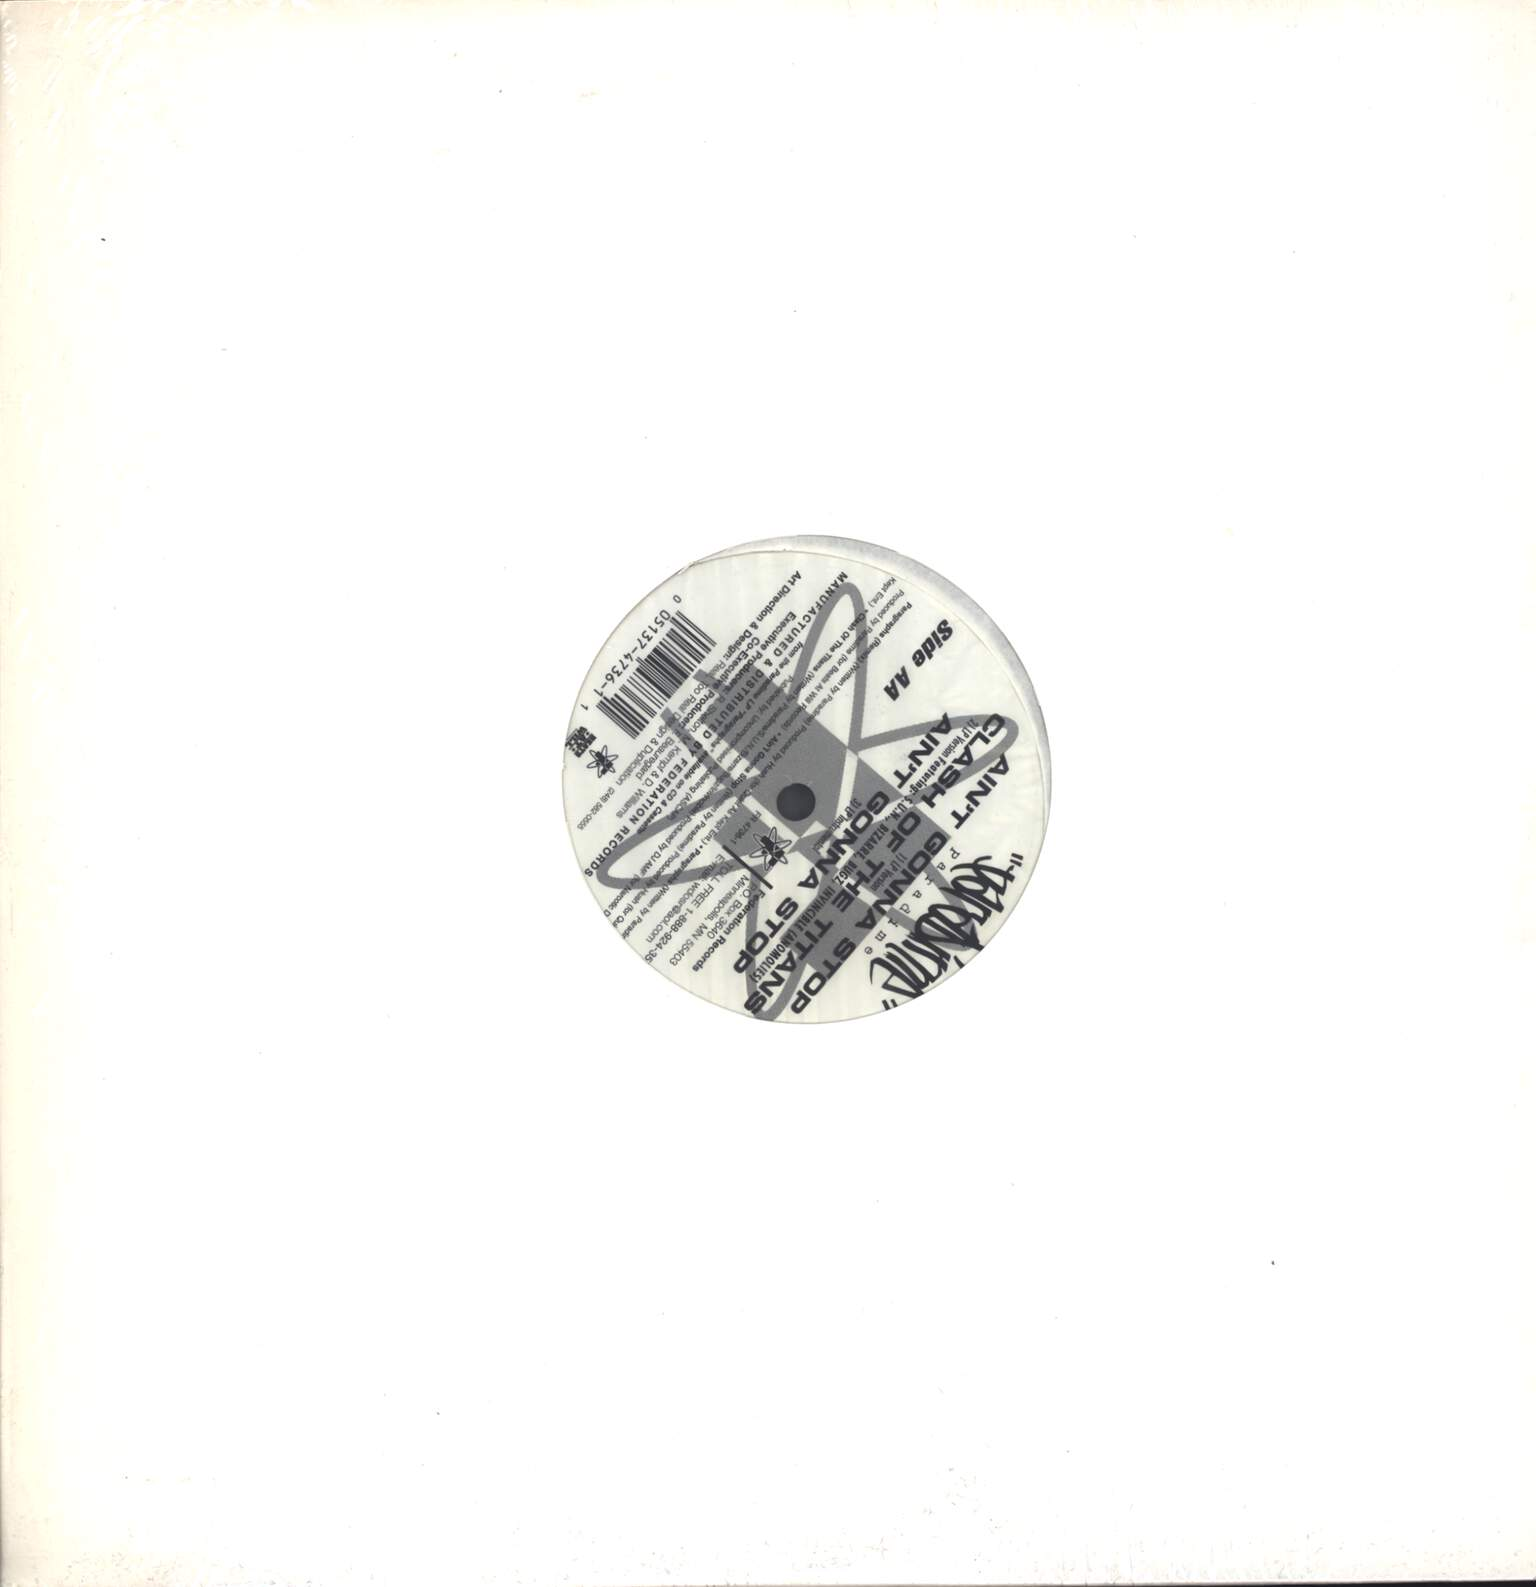 "Paradime: Paragraphs (Remix), 12"" Maxi Single (Vinyl)"